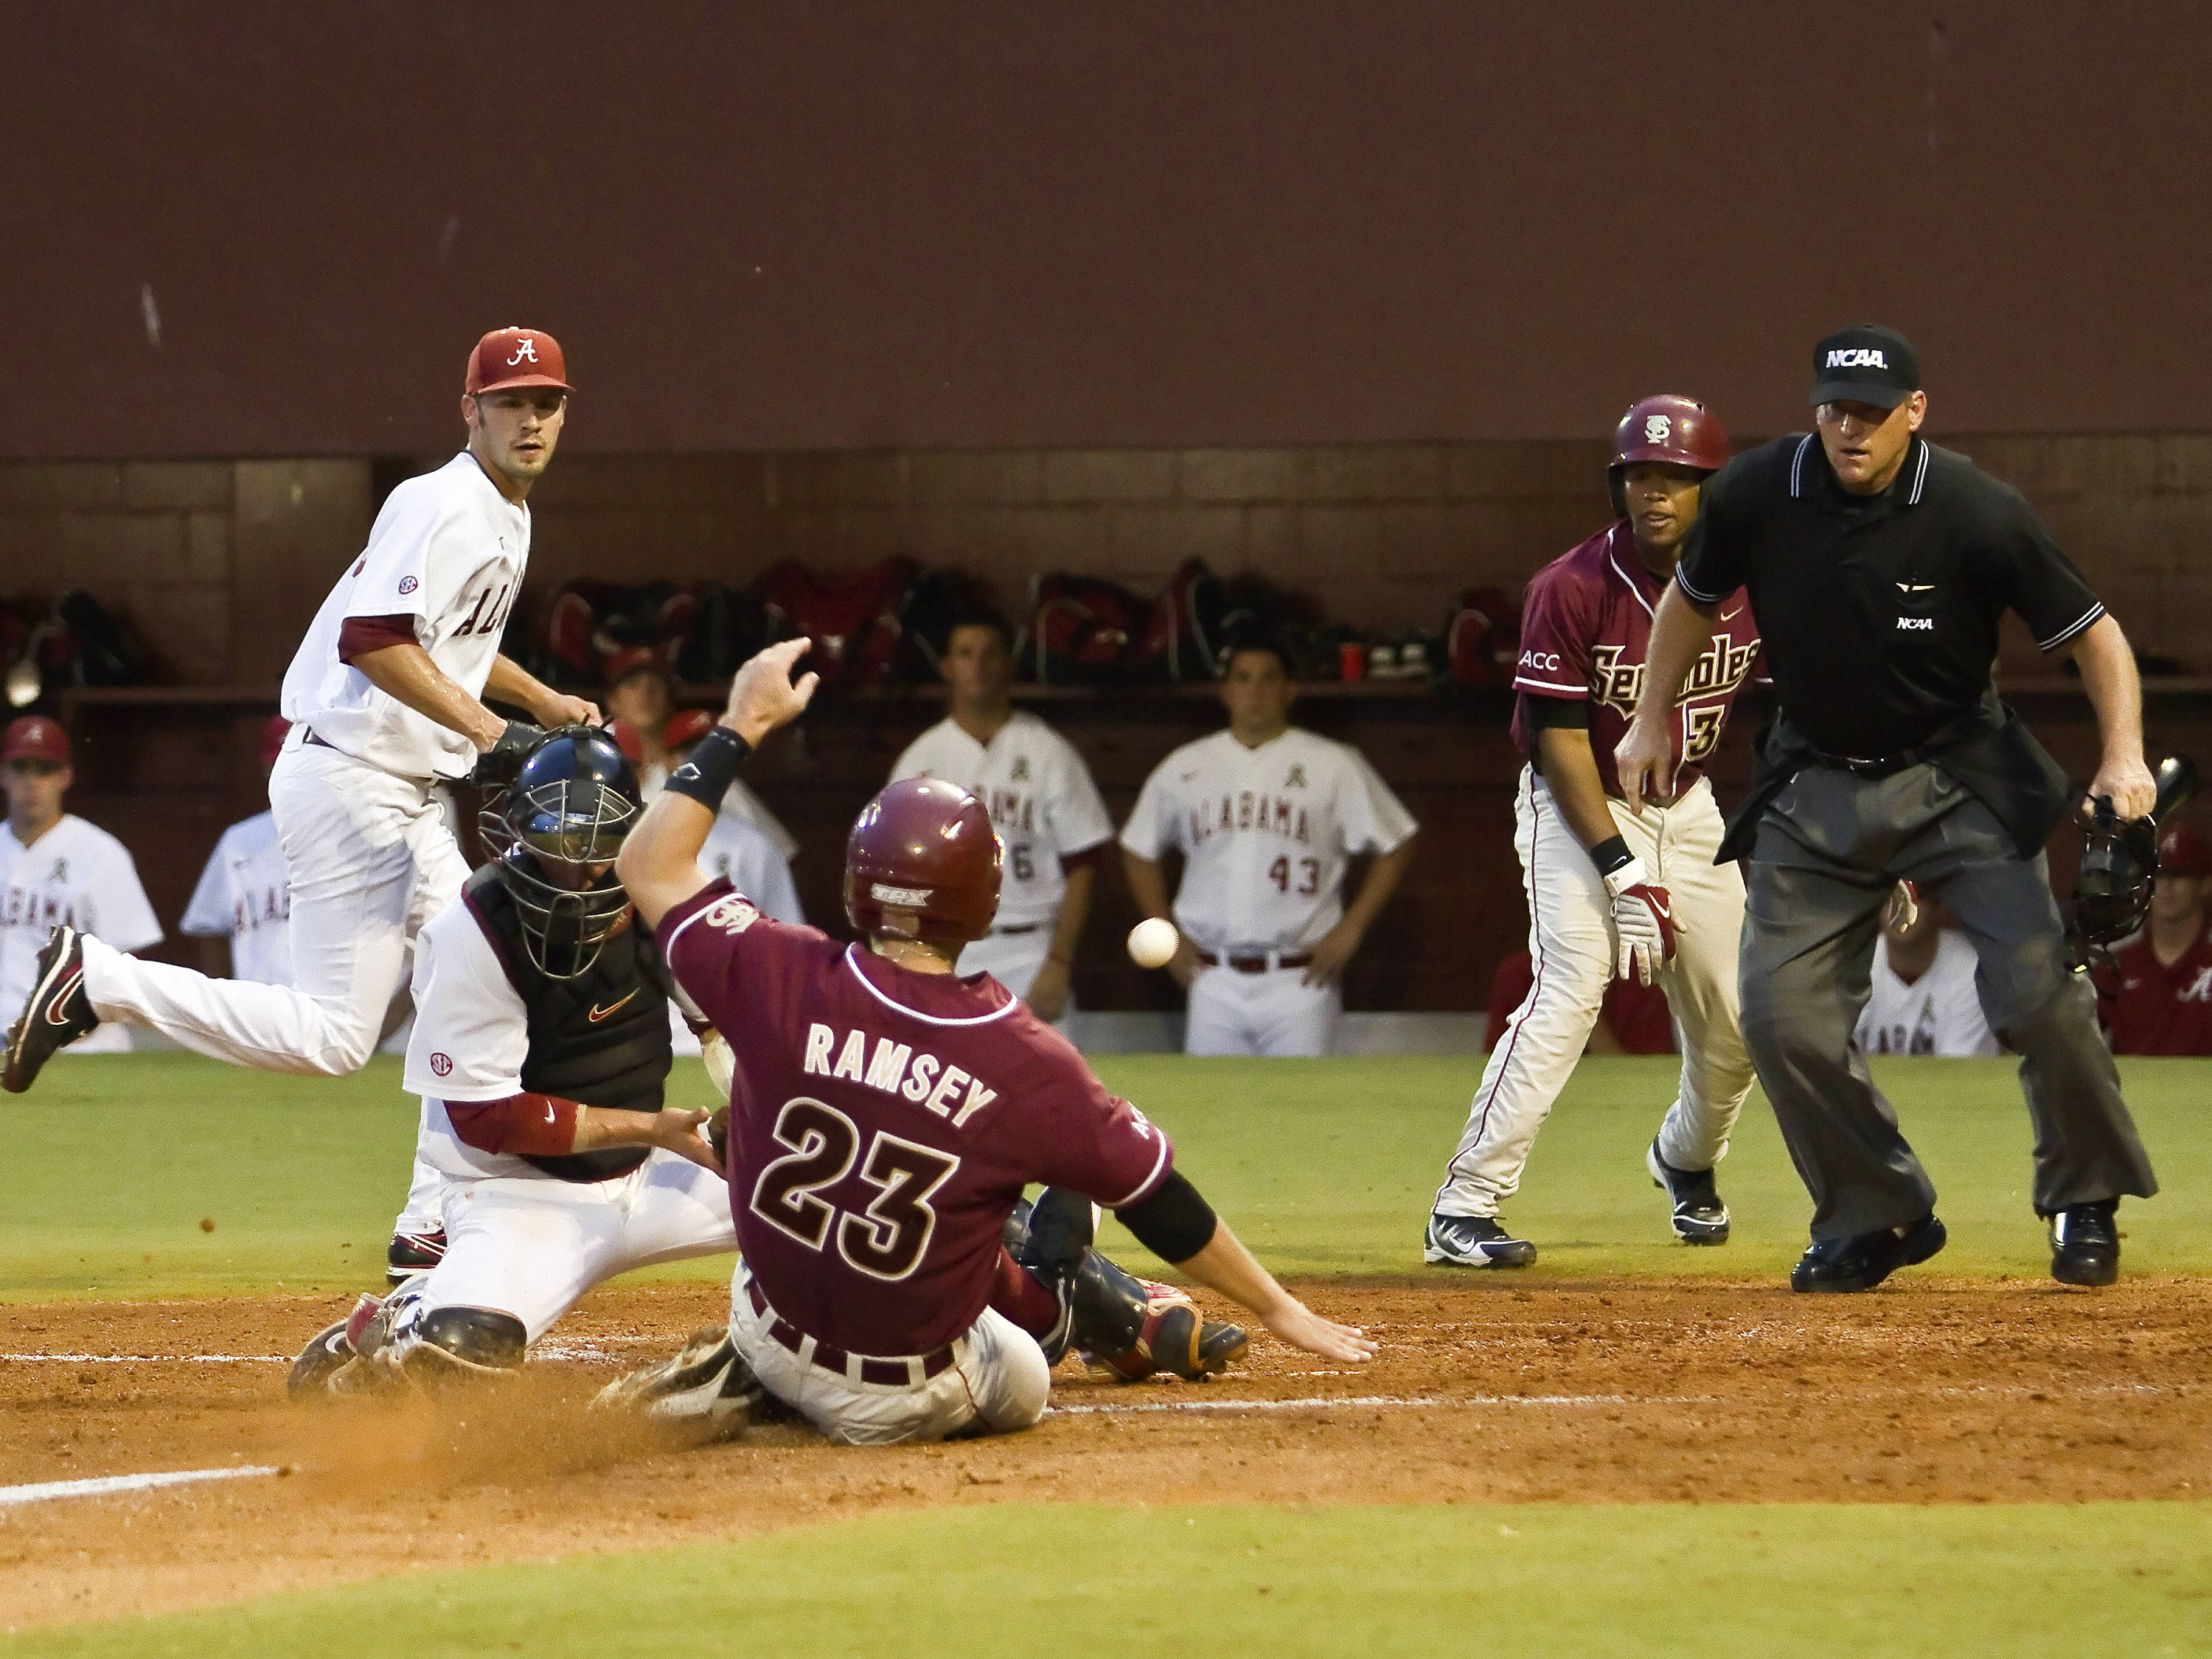 Outfielder James Ramsey (23) disrupting the play at home and scoring